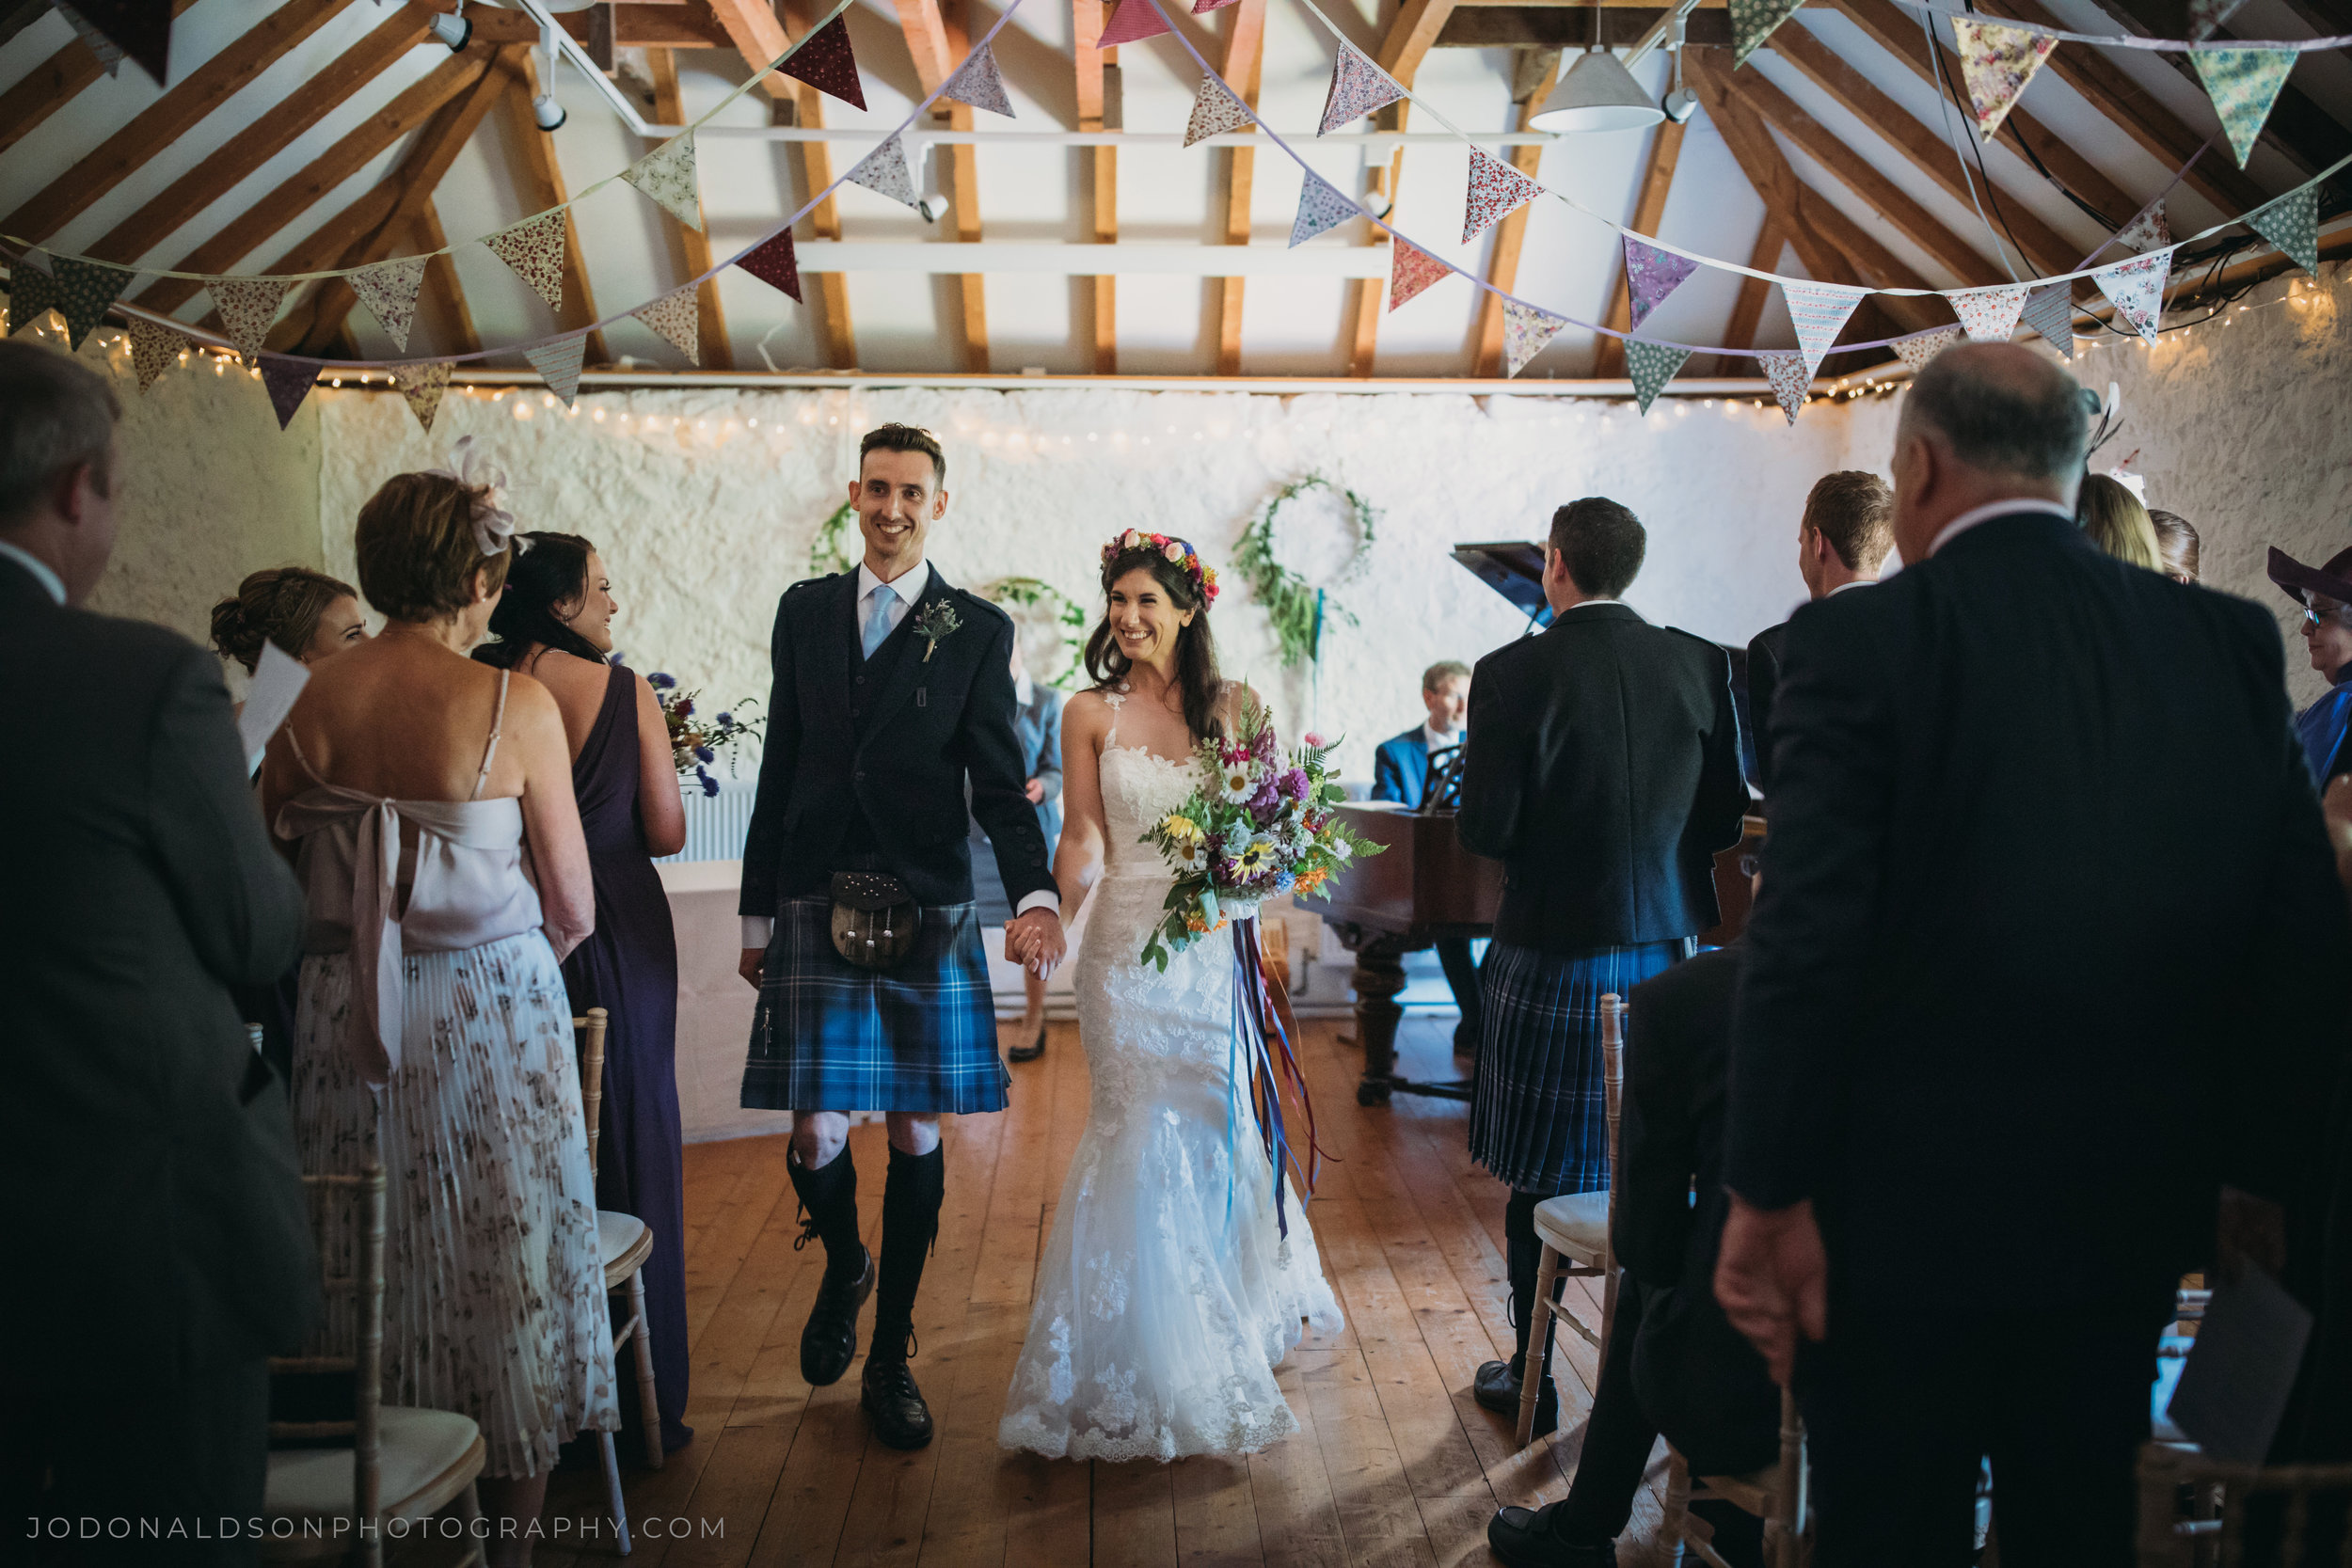 Fran-Phil-Ross-Wedding-Jo-Donaldson-Photography-0311.jpg